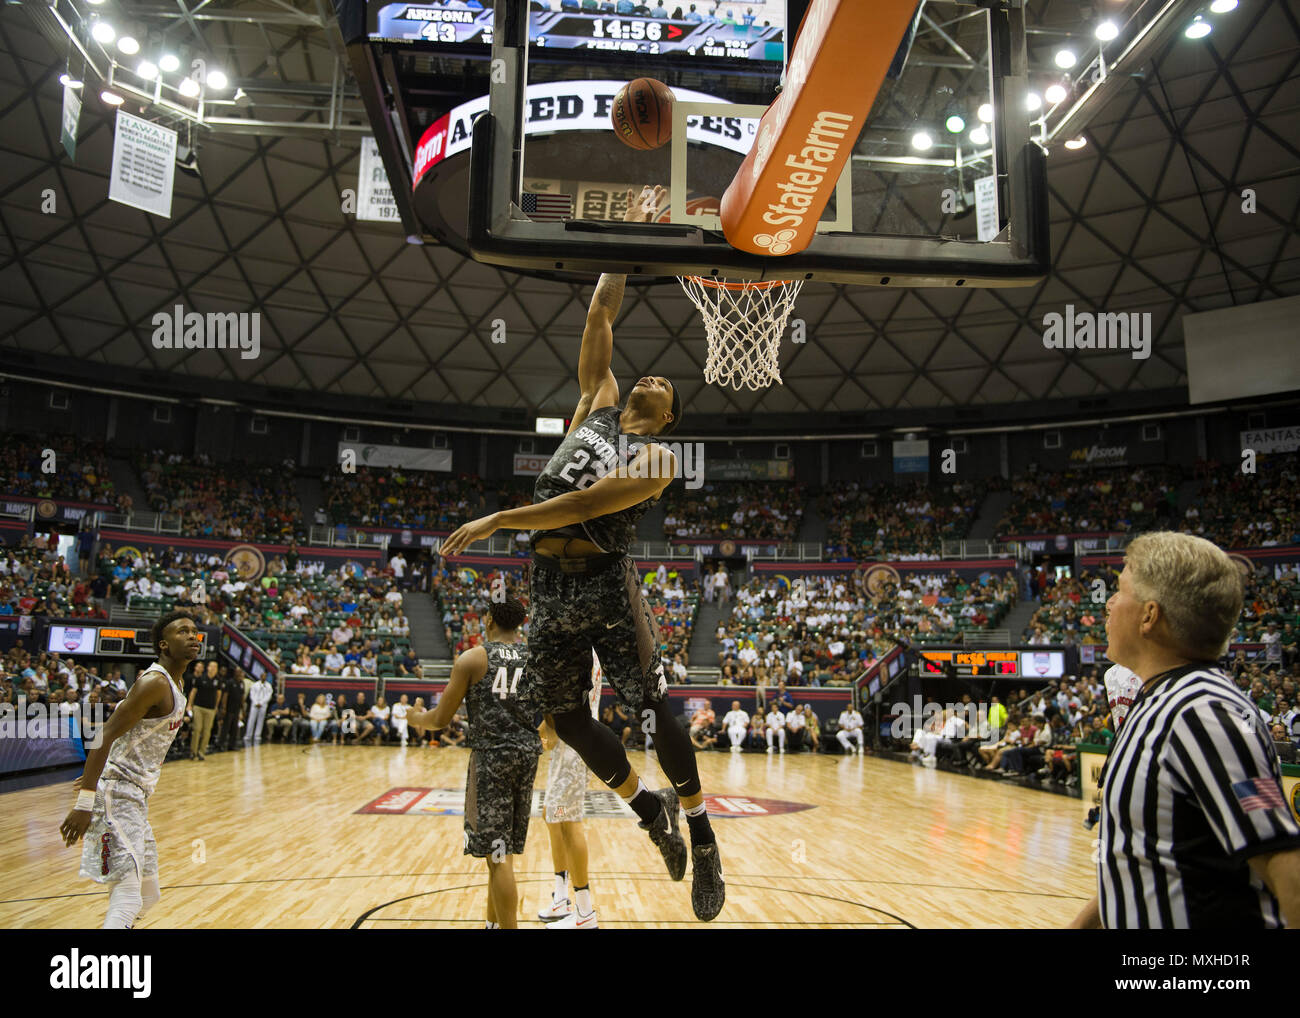 161111-N-AV234-622 (Nov.11, 2016) HONOLULU -- Michigan State Spartan Miles Bridges, jumps for a rebound during the 2016 Armed Forces Classic at Hawaii University's Stan Sheriff Center. The Armed Forces Classic switches venues annually to different military locations around the world. 2016 marks the Fifth Annual Armed Forces Classic and is being held in Hawaii to honor the Navy and the 75th anniversary of the attack on Pearl Harbor. (U.S. Navy photo by Petty Officer 2nd Class Somers Steelman/Released) Stock Photo